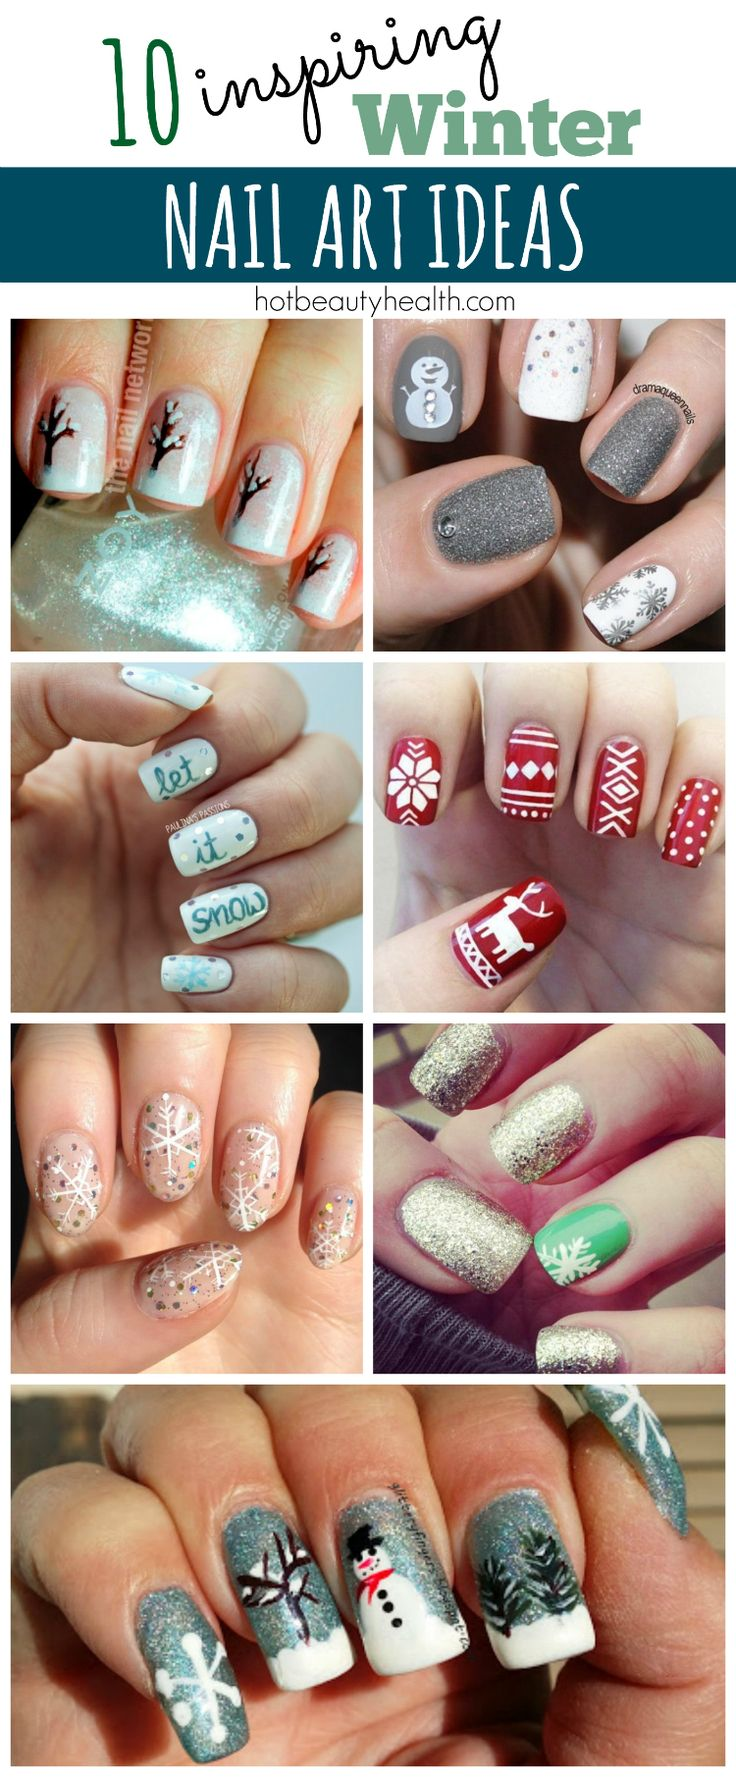 Winter nail art designs that all nail addicts will love!